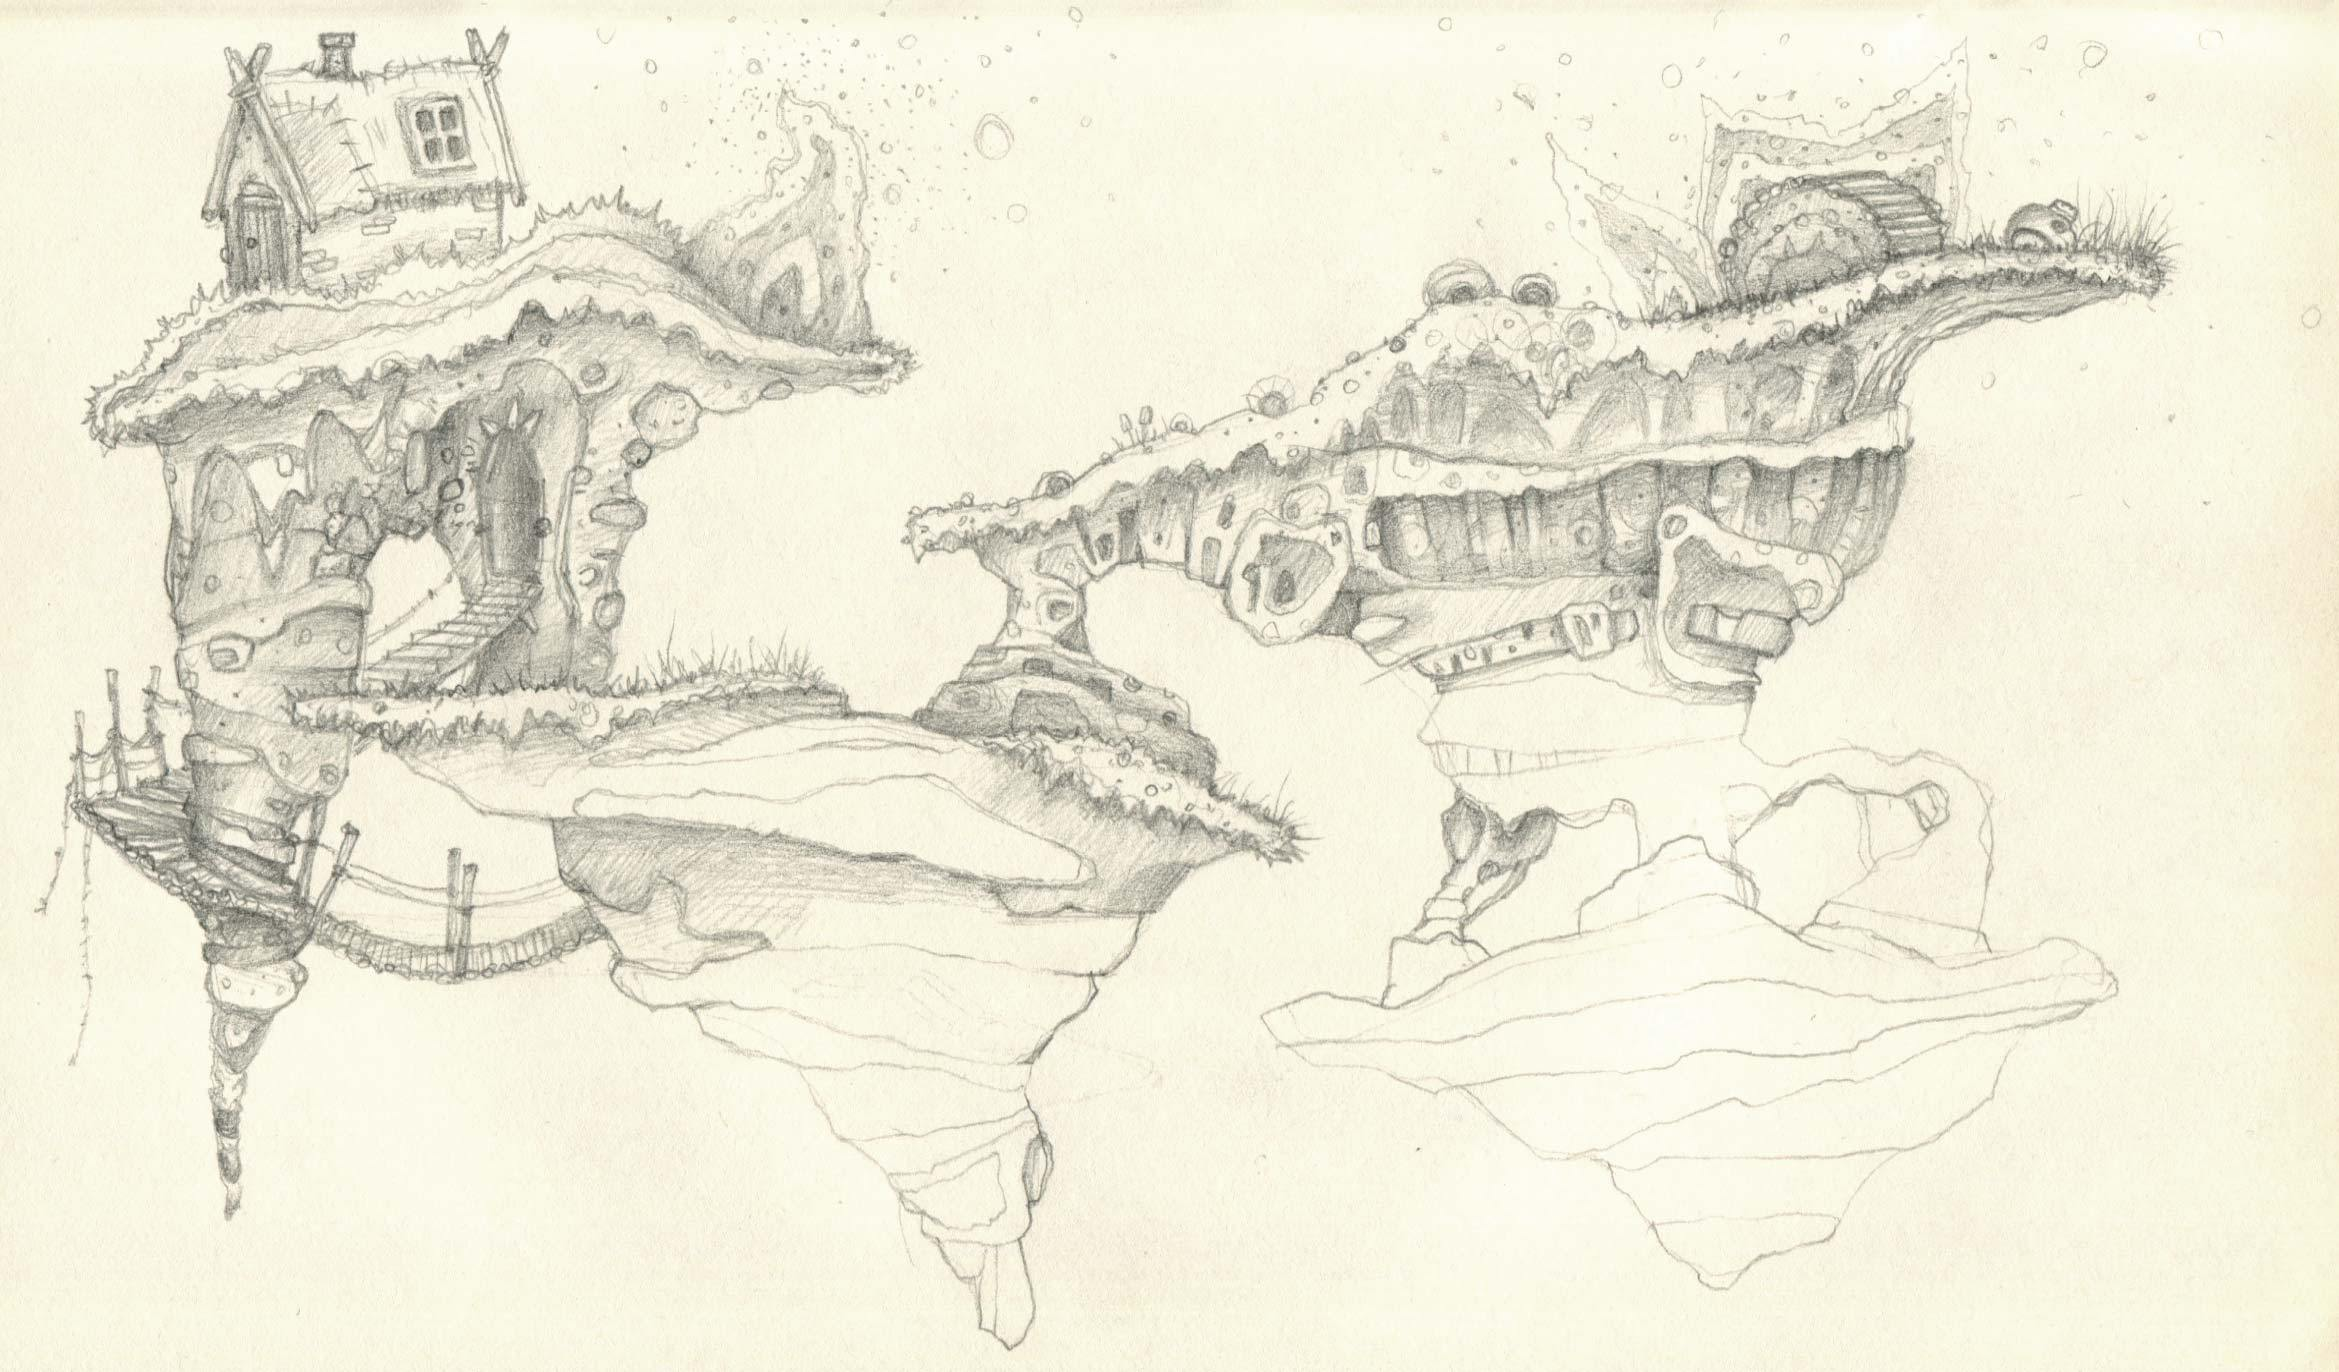 2339x1372 Floating Islands Pencil Sketch With A Rope Bridge And Thatched